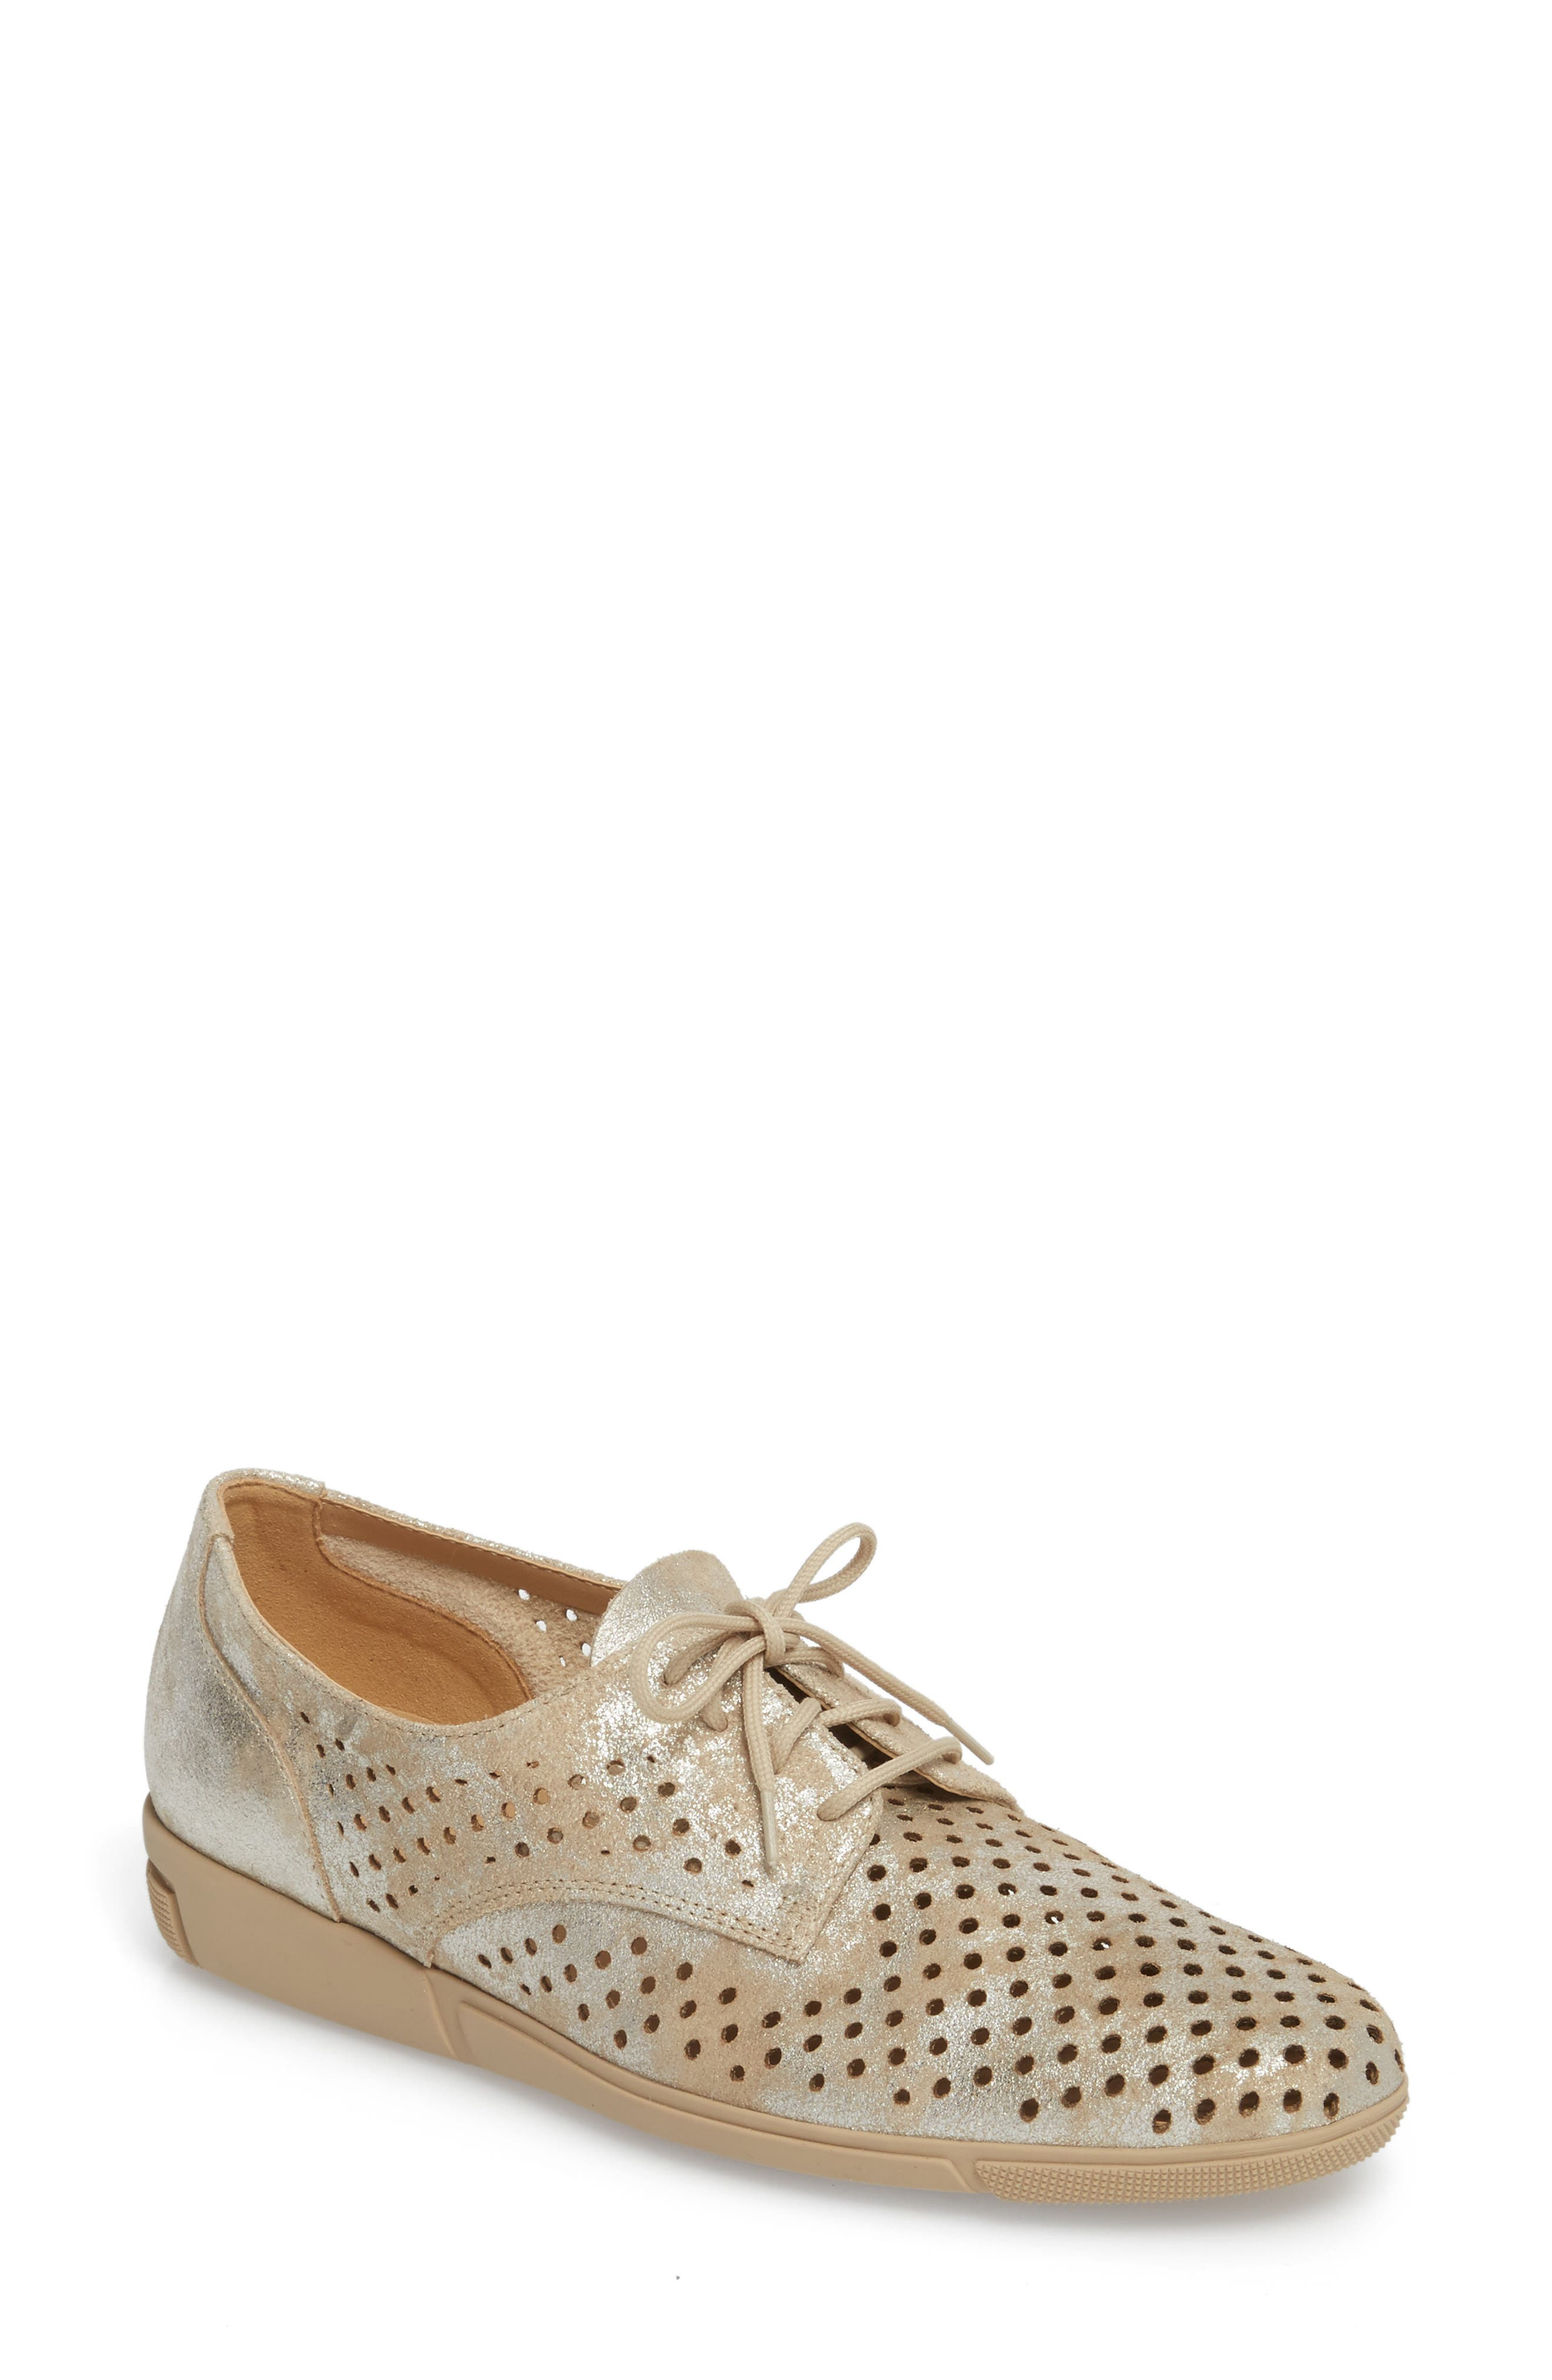 DIRCE PERFORATED OXFORD FLAT